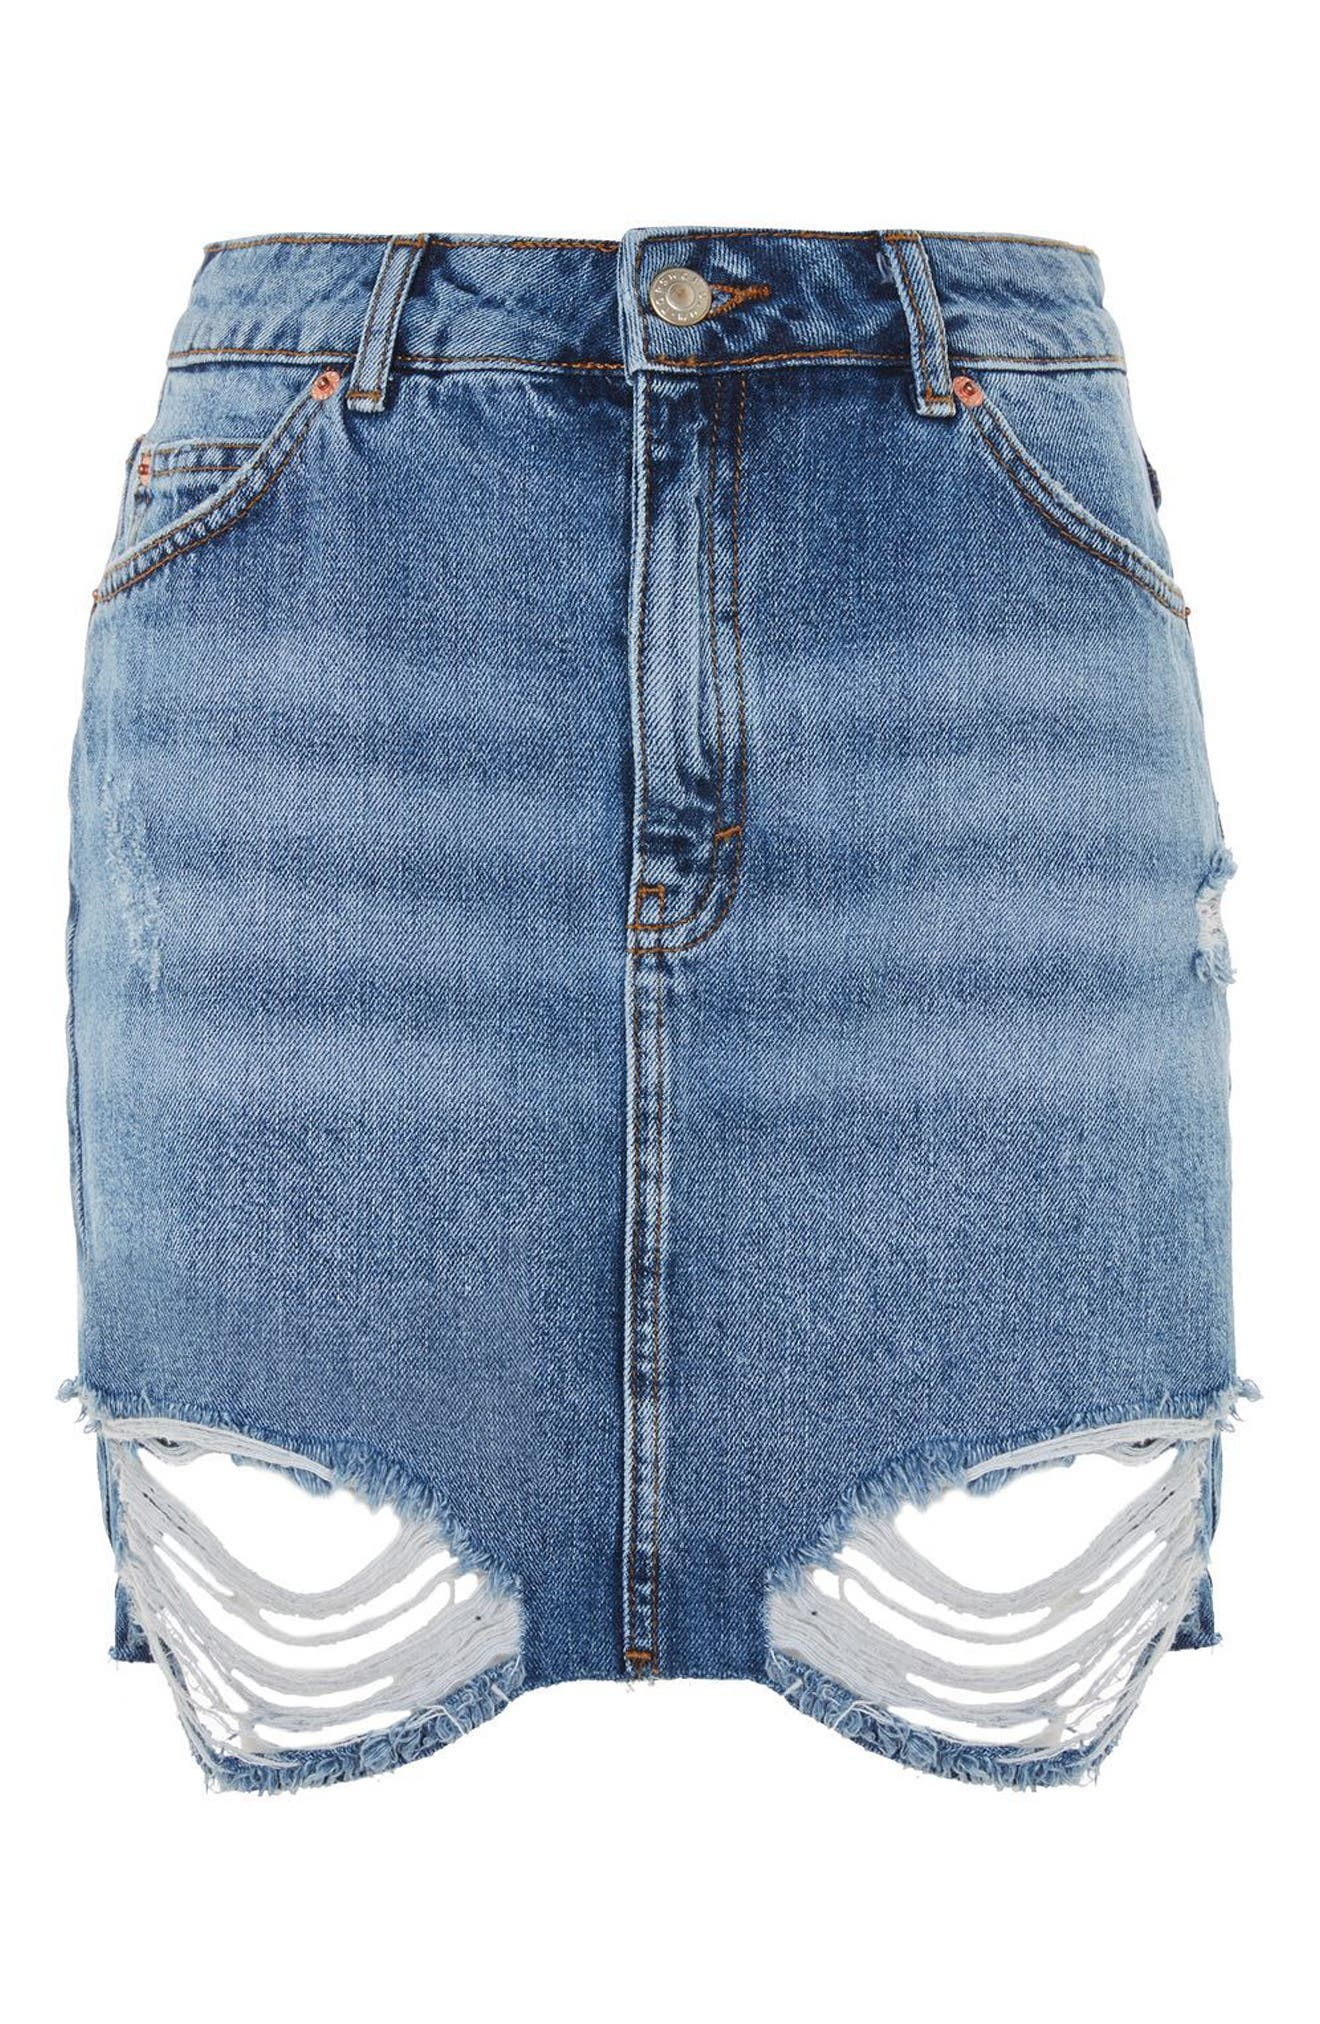 Alternate Image 3  - Topshop Ripped Denim Miniskirt